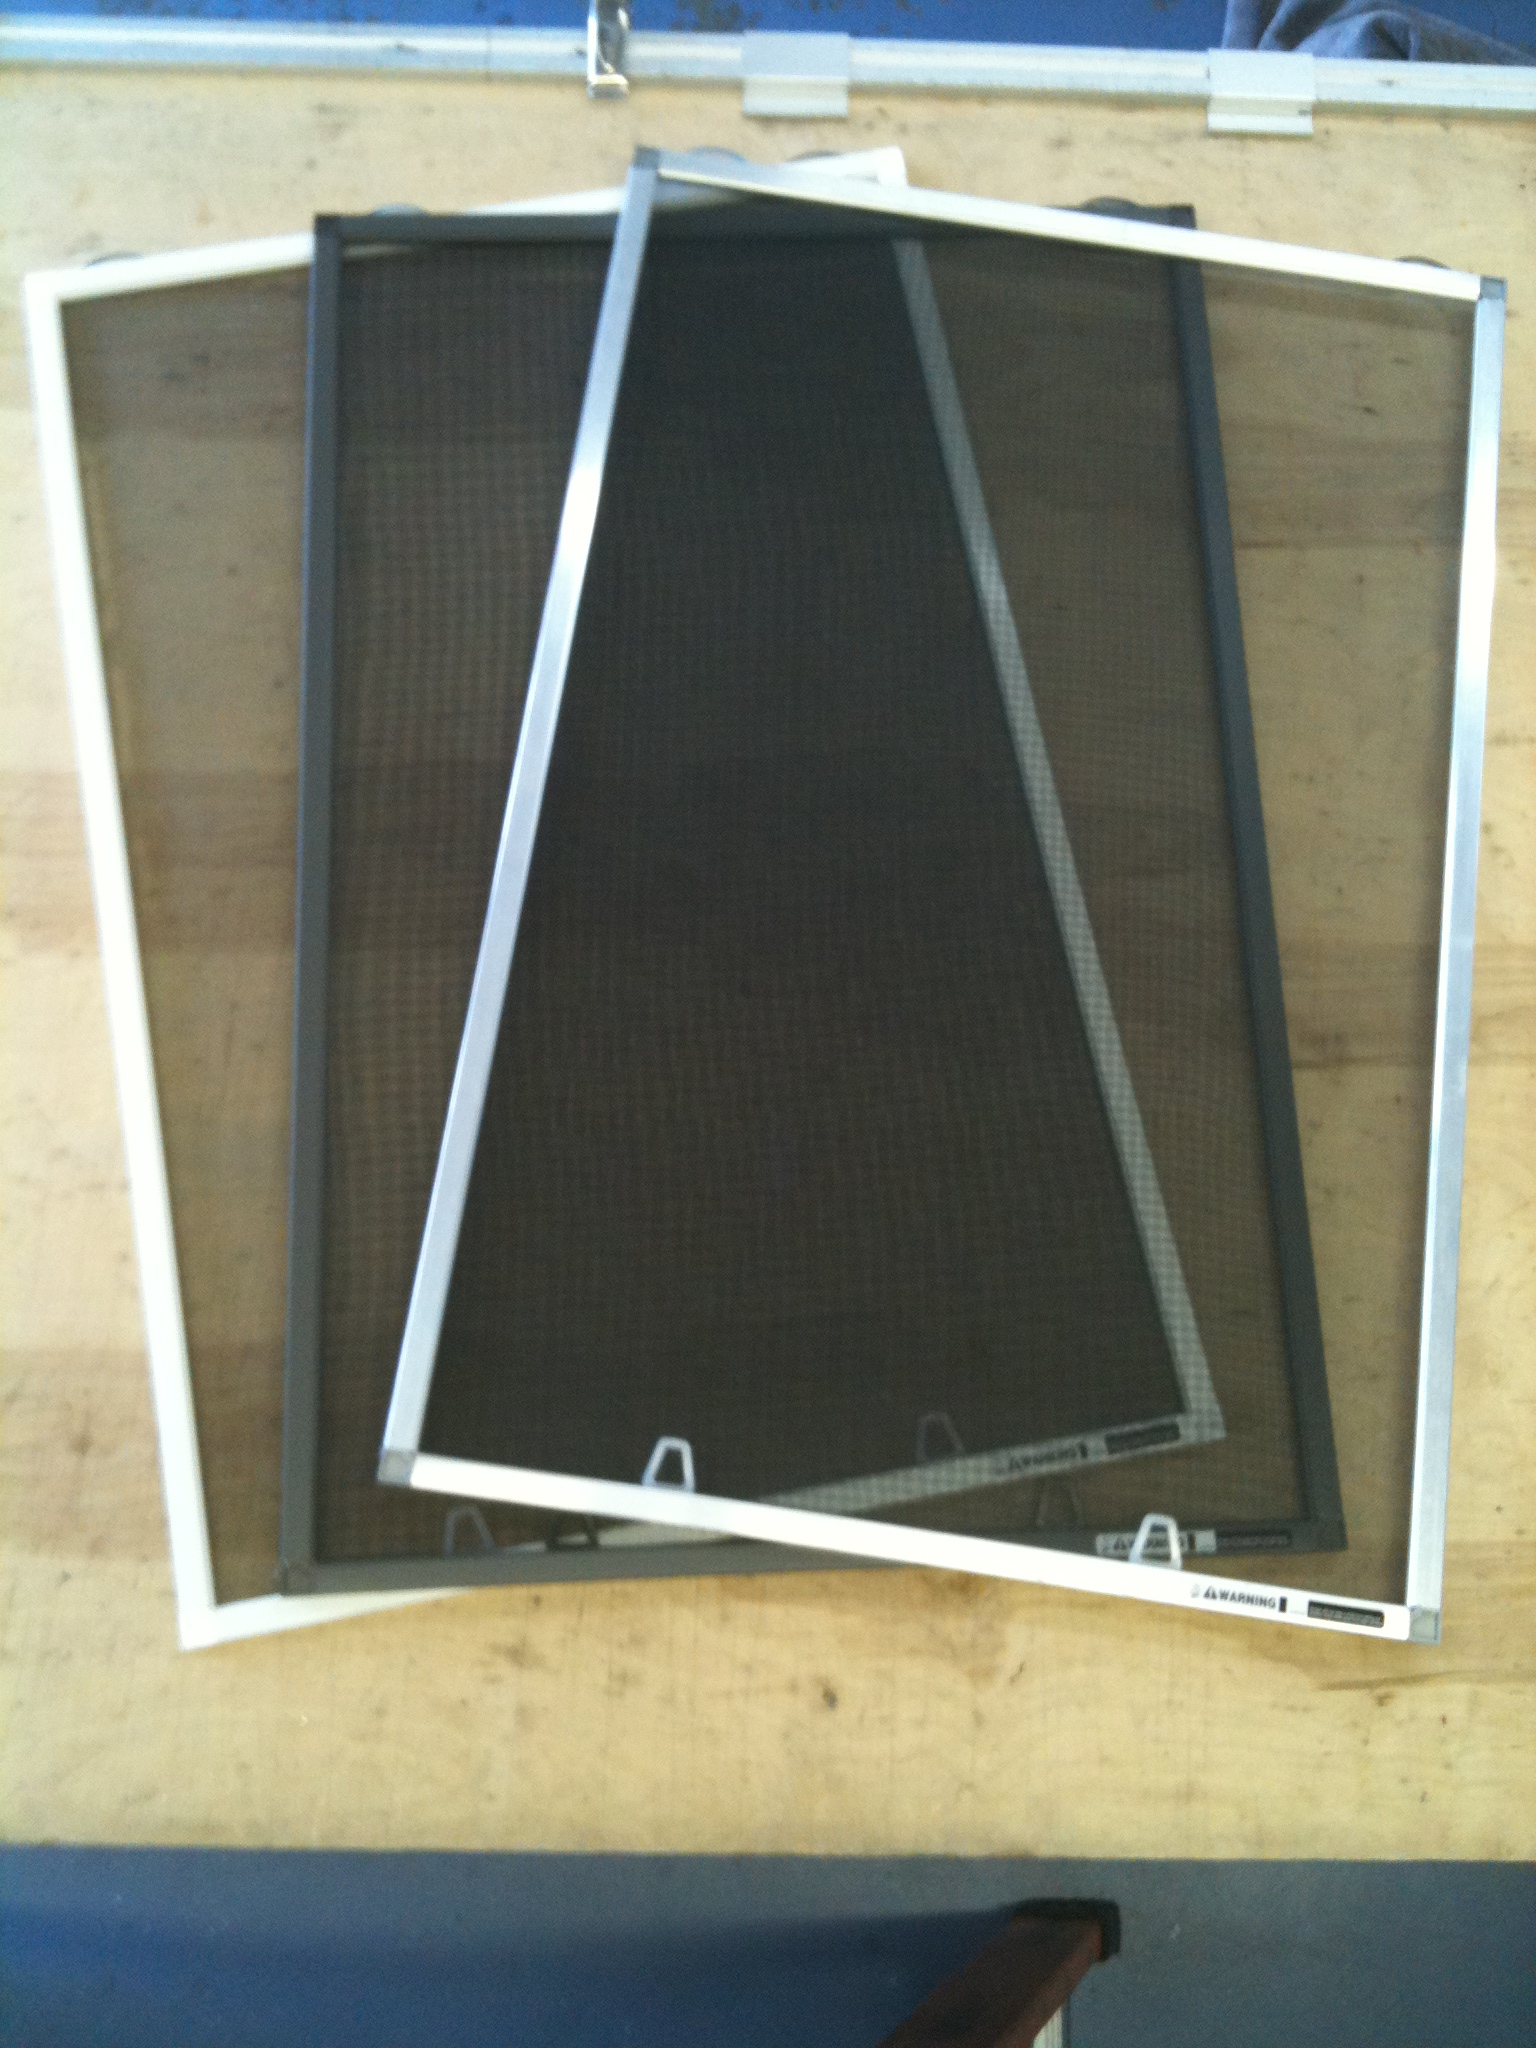 Custom Window Screens Sceen Repair And Replacement In The East Bay Windowsmith